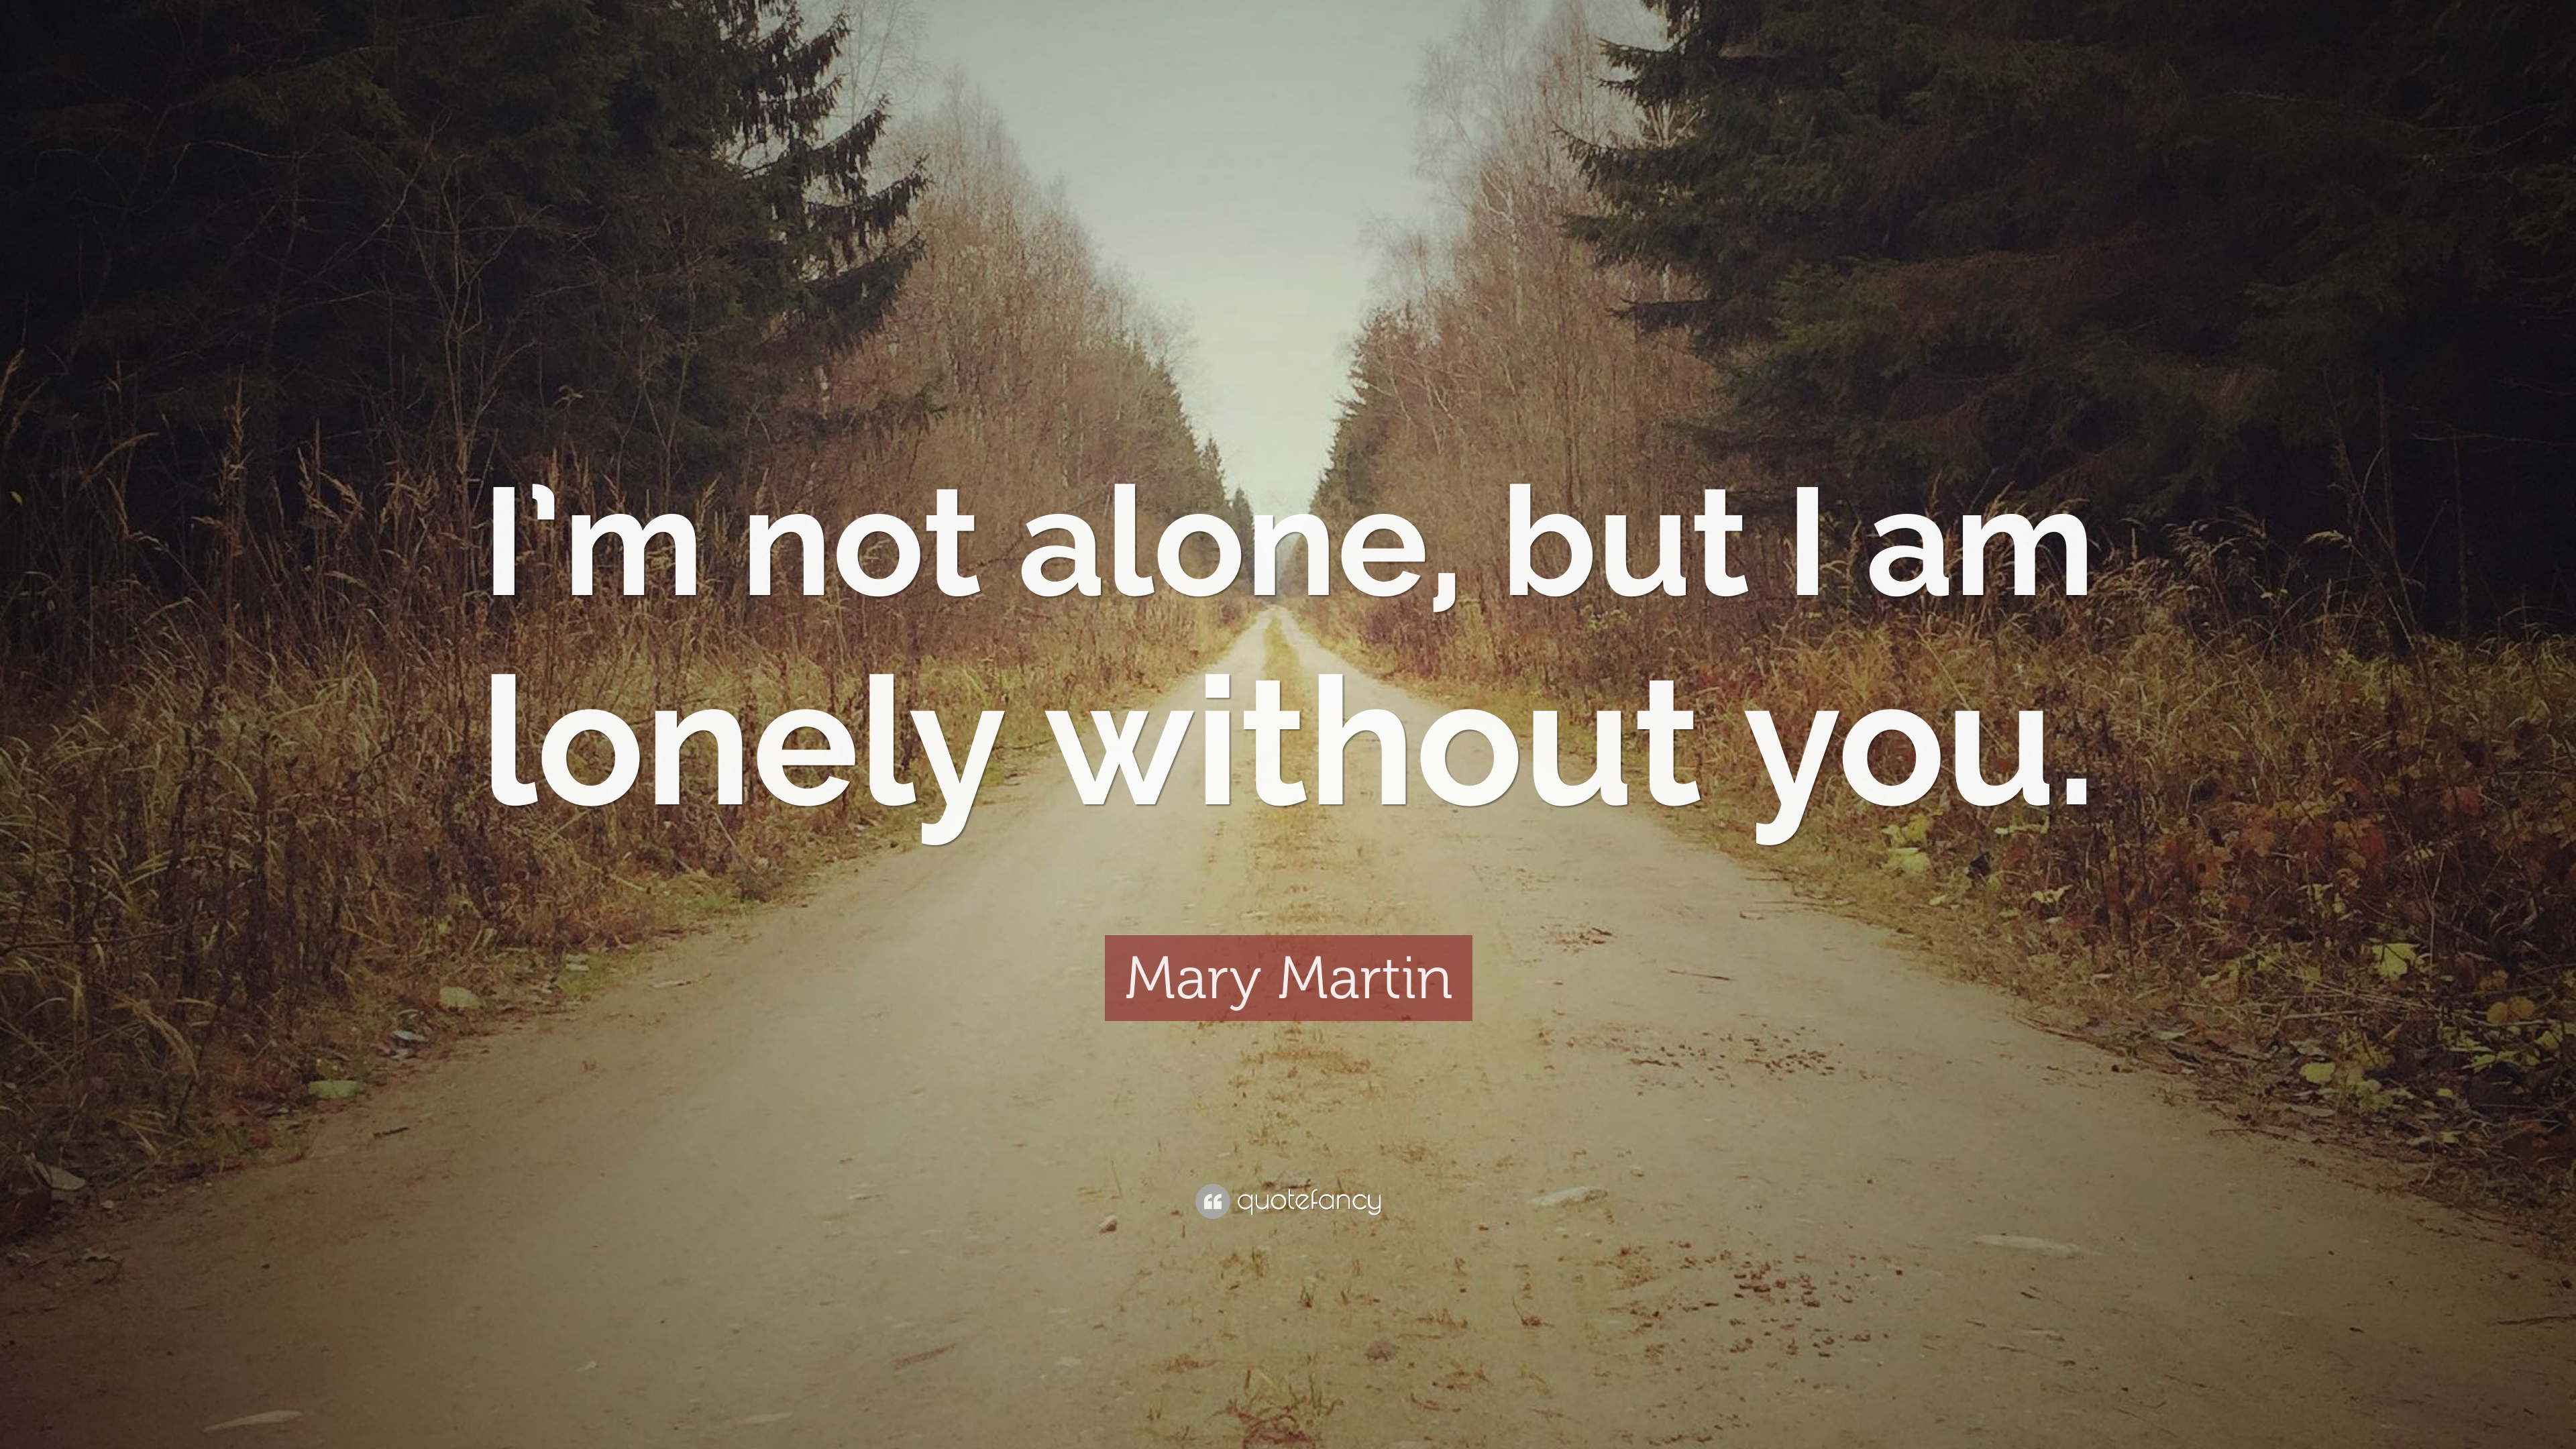 Valentineu0027s Day Quotes: U201cIu0027m Not Alone, But I Am Lonely Without